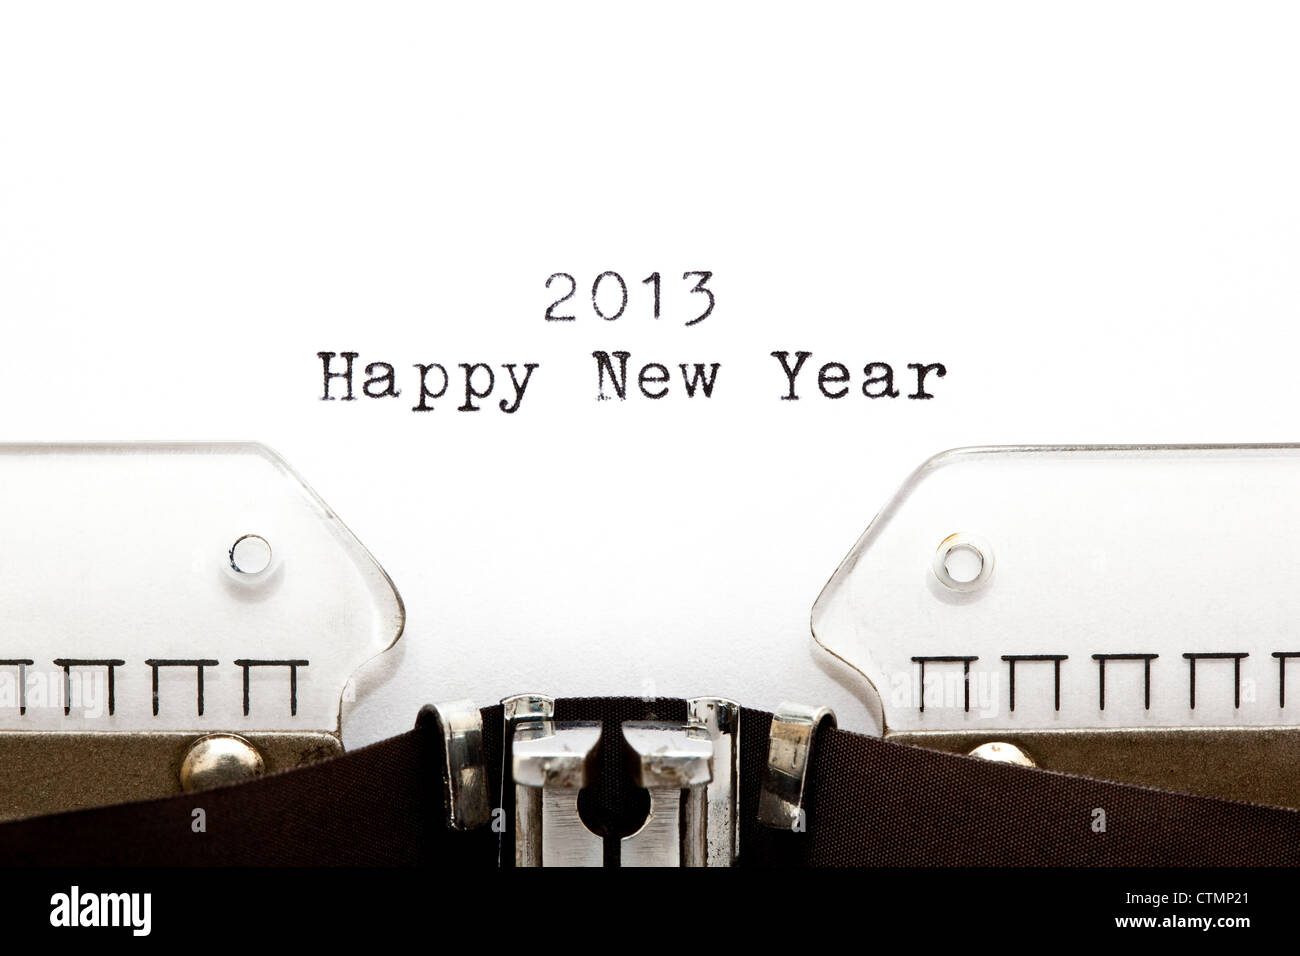 Concept image with 2013 Happy New Year written on an old typewriter - Stock Image